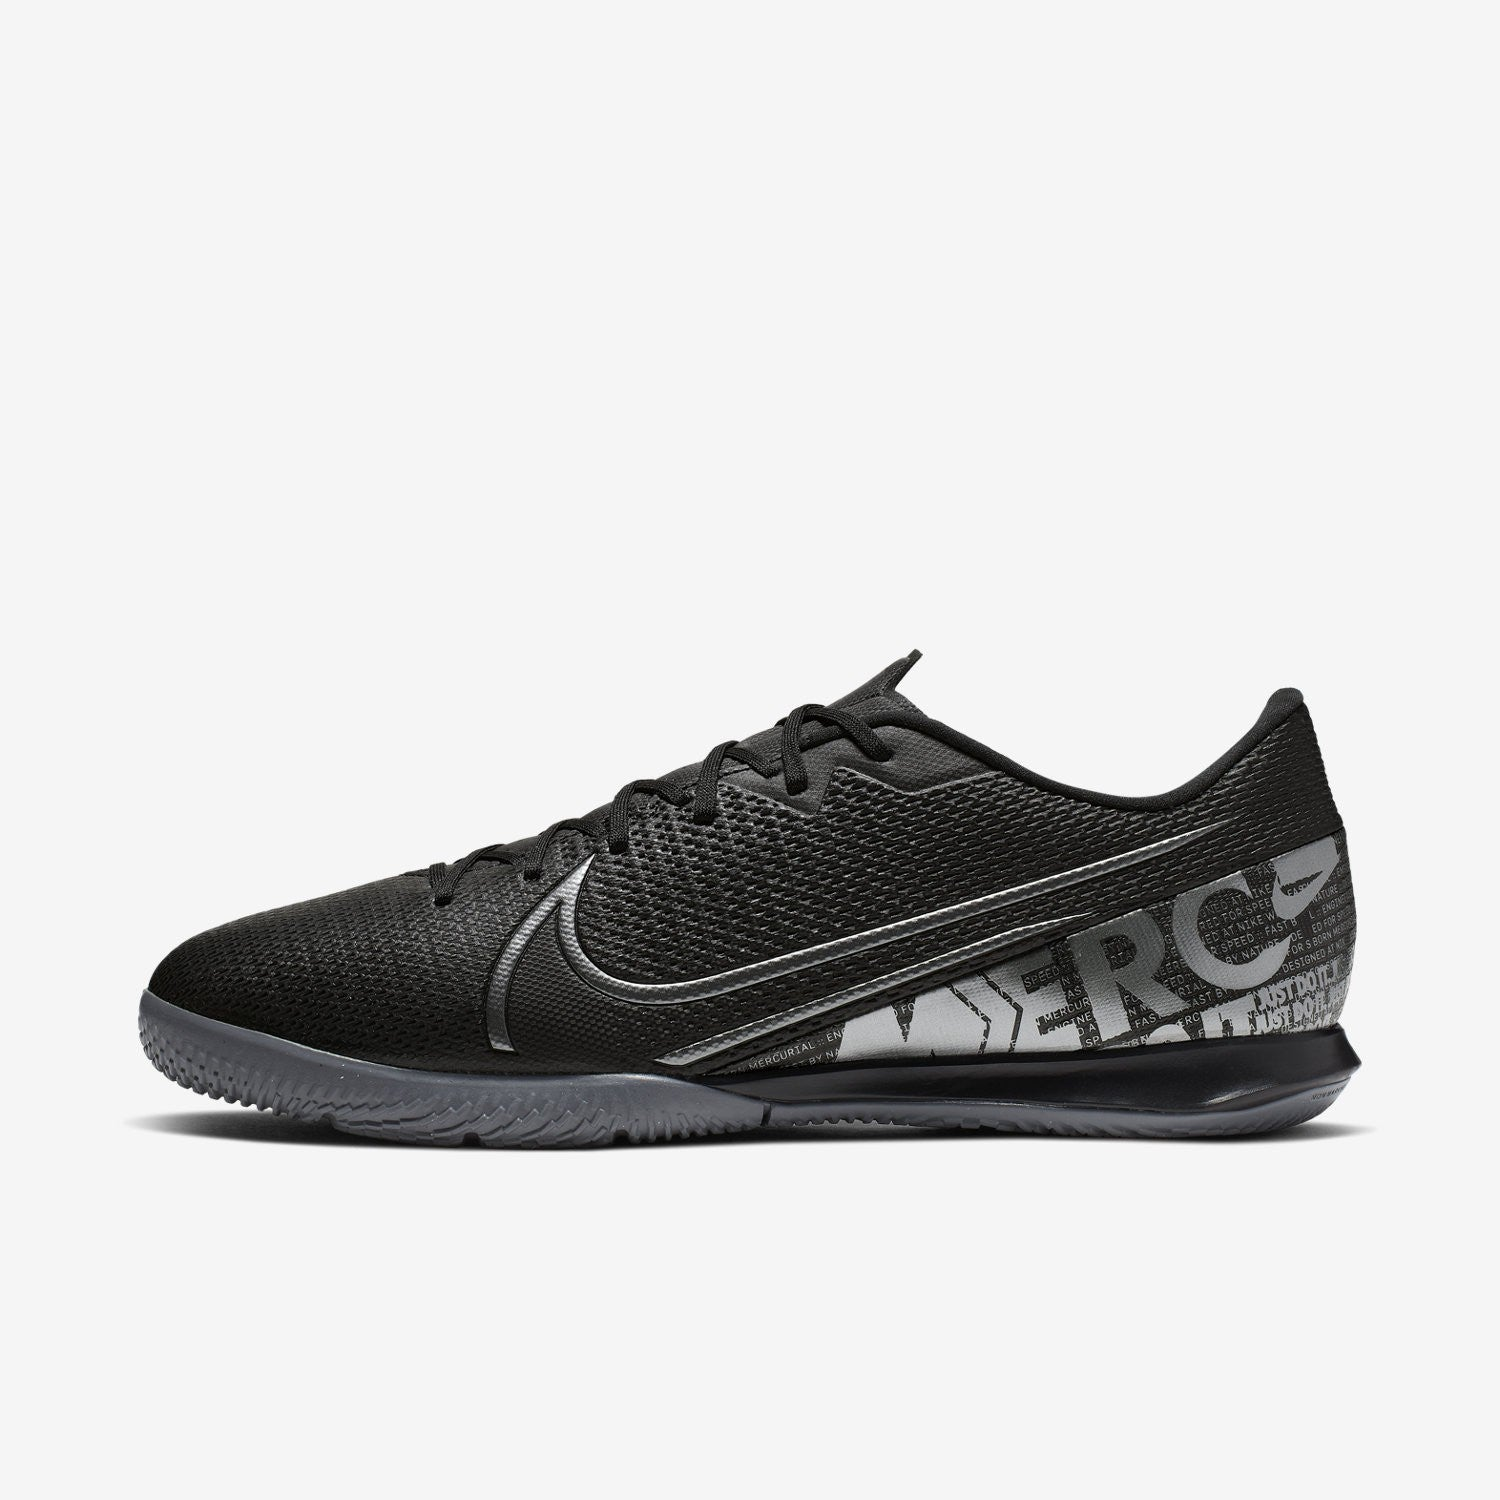 Mercurial Vapor 13 Academy Indoor Shoes - Black/Cool Grey